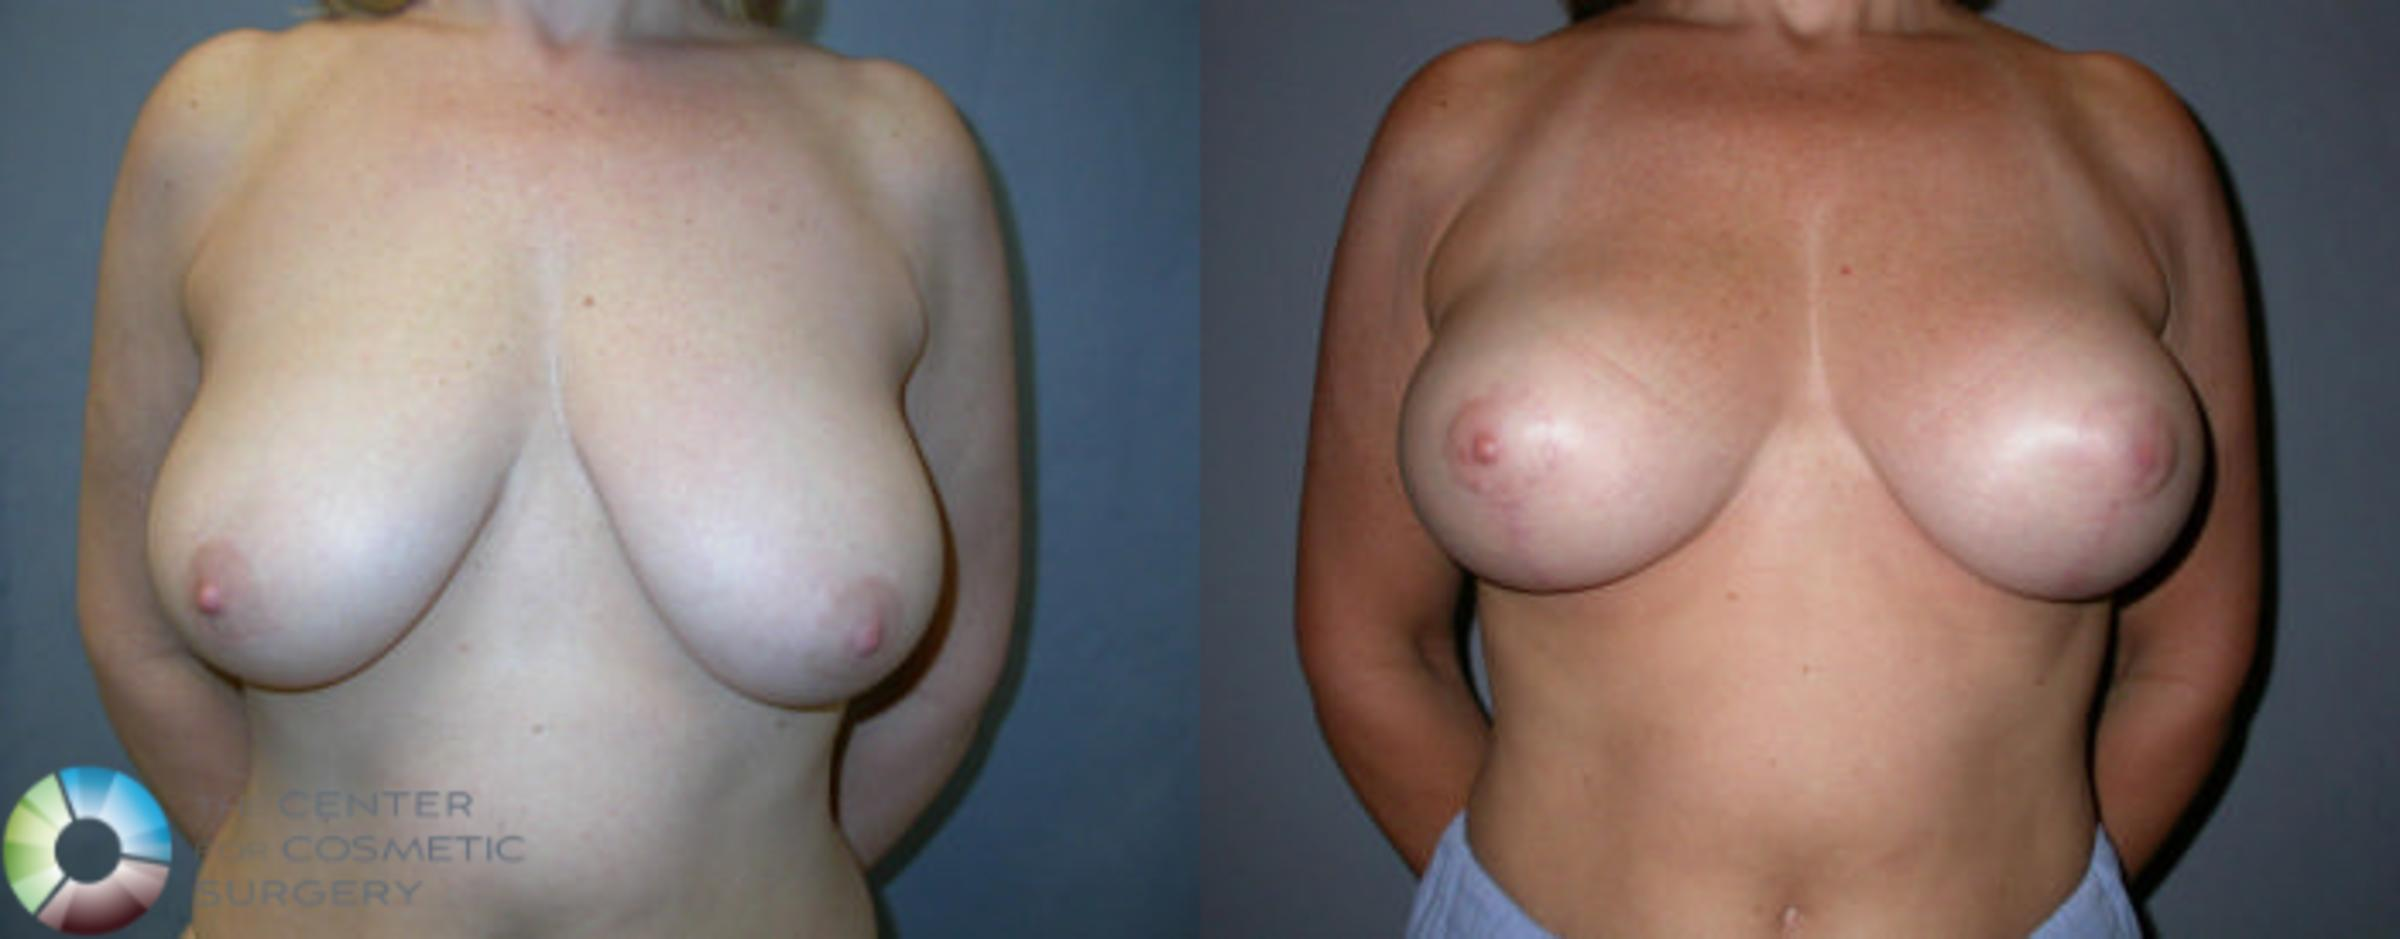 Breast Lift Case 48 Before & After View #1 | Golden, CO | The Center for Cosmetic Surgery